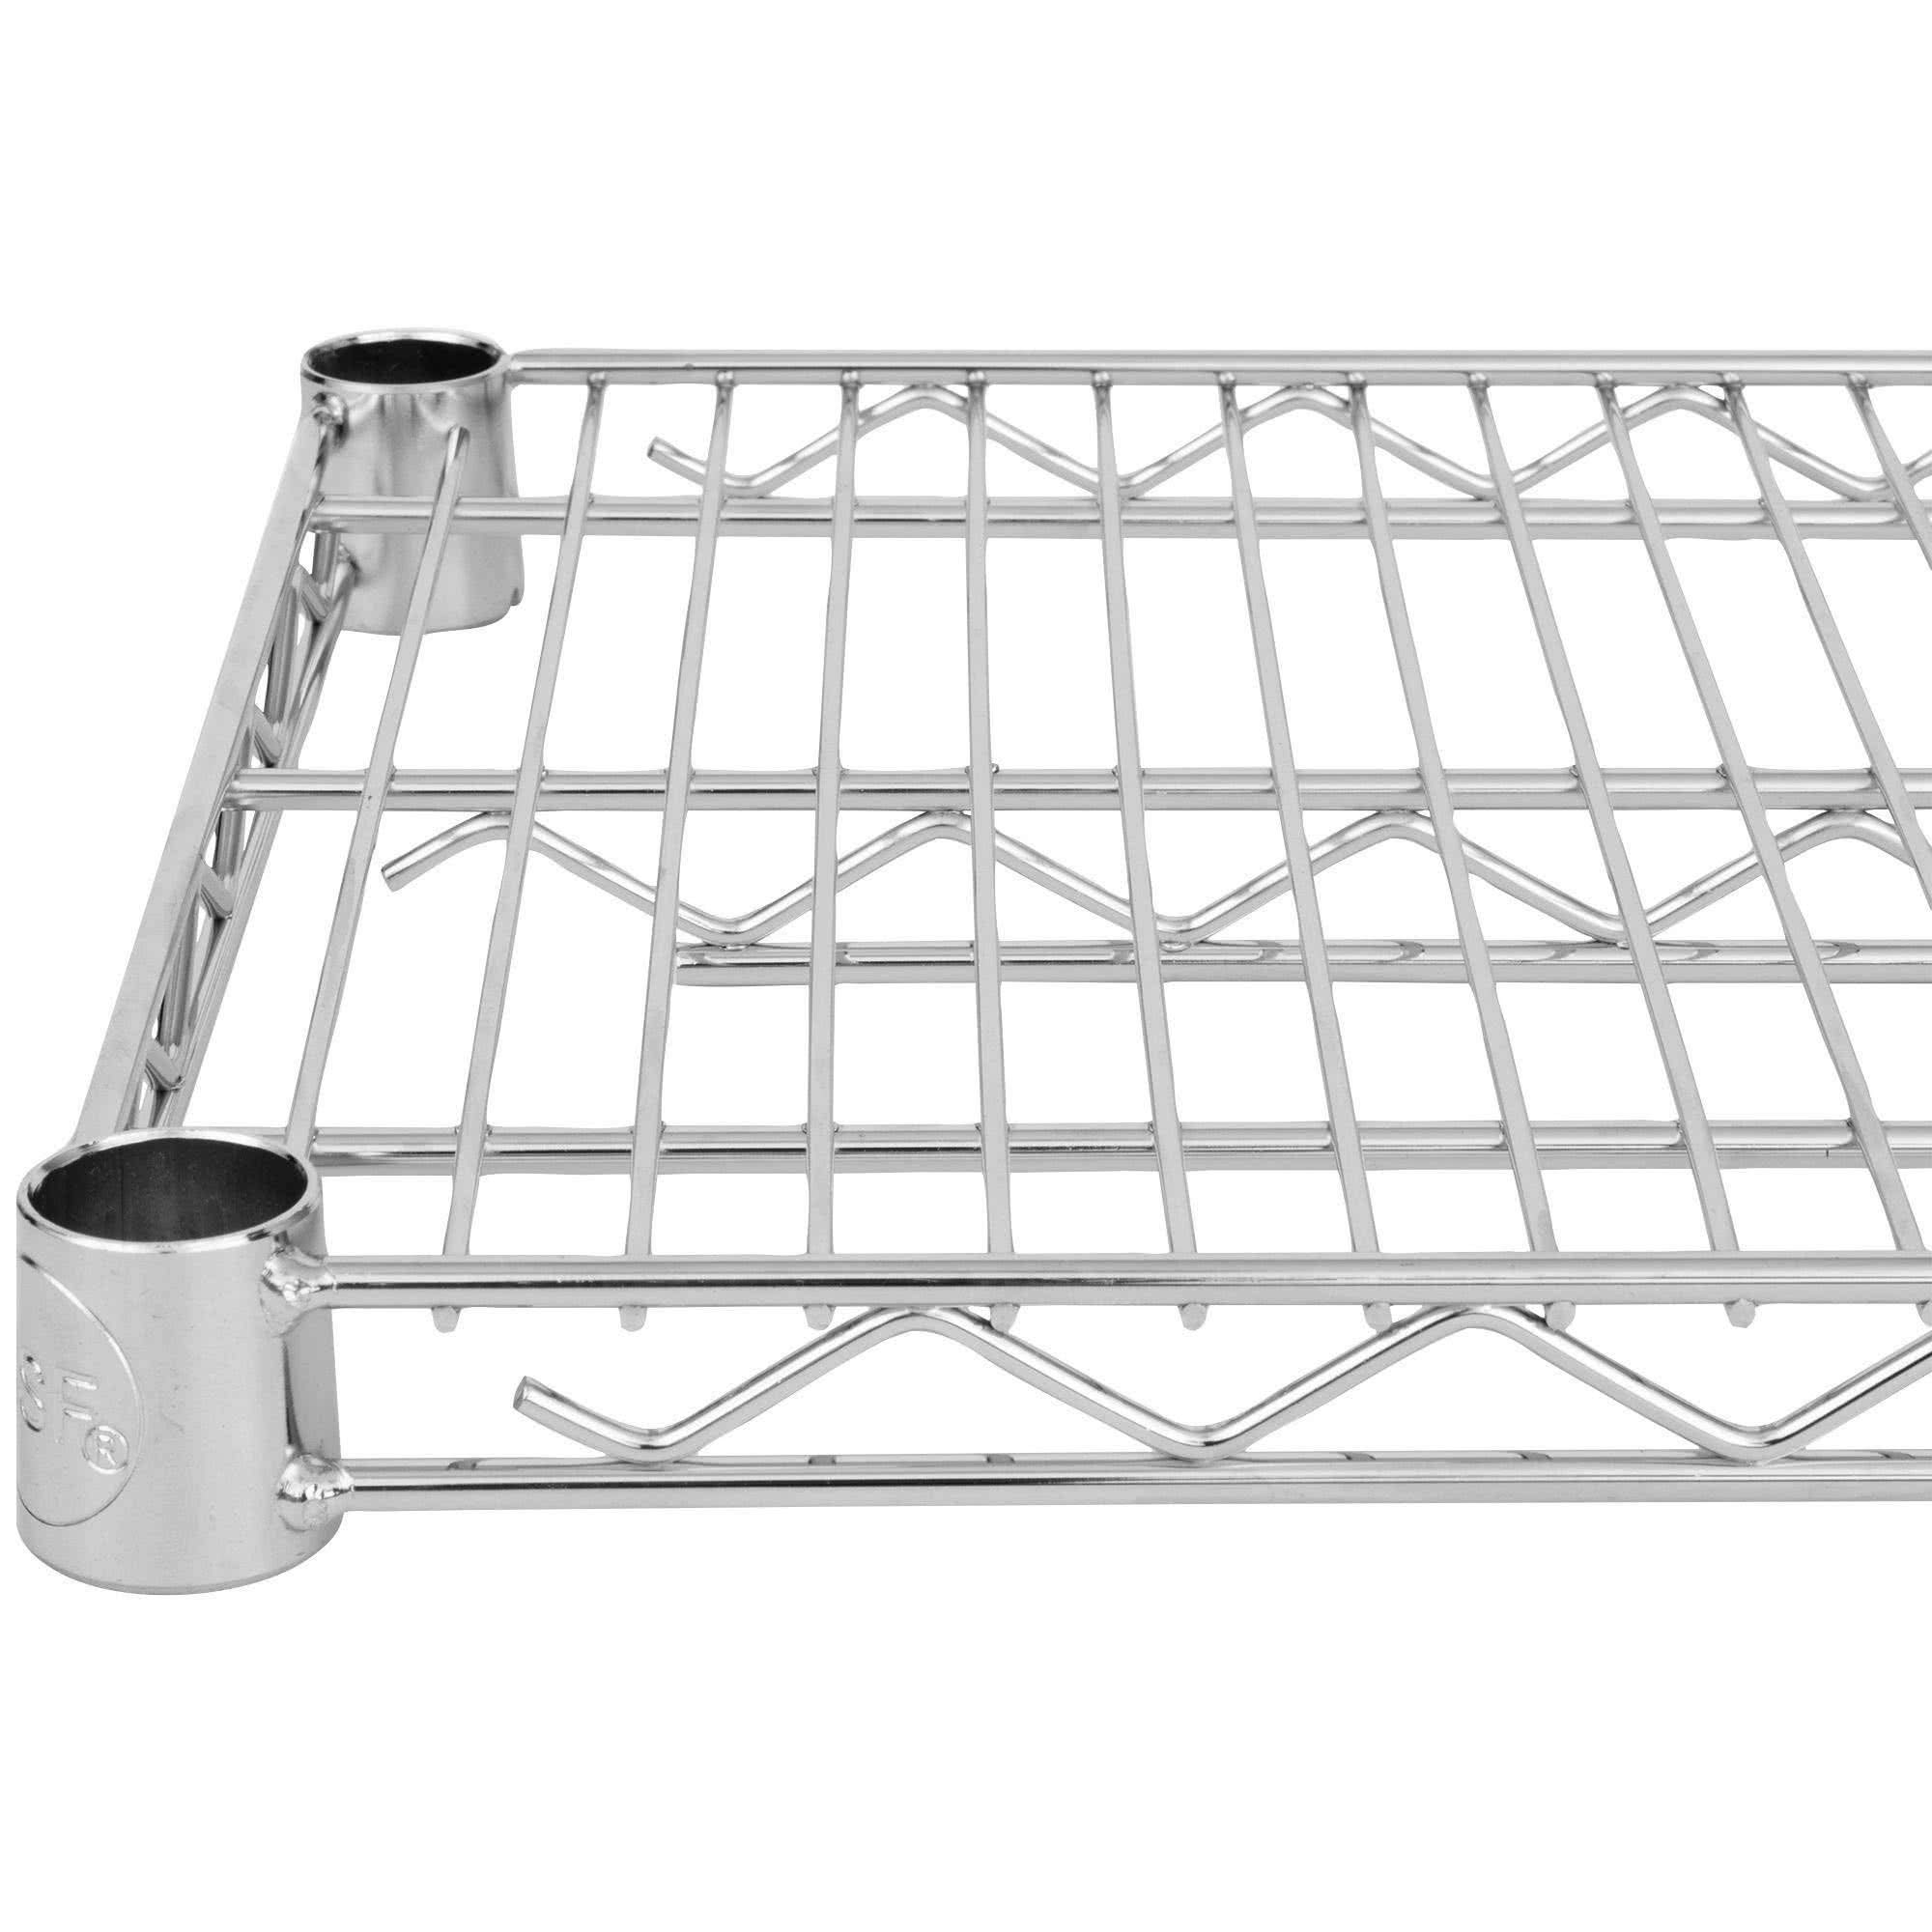 Commercial Chrome Wire Shelving 24 x 60 (2 Shelves) - NSF by KPS